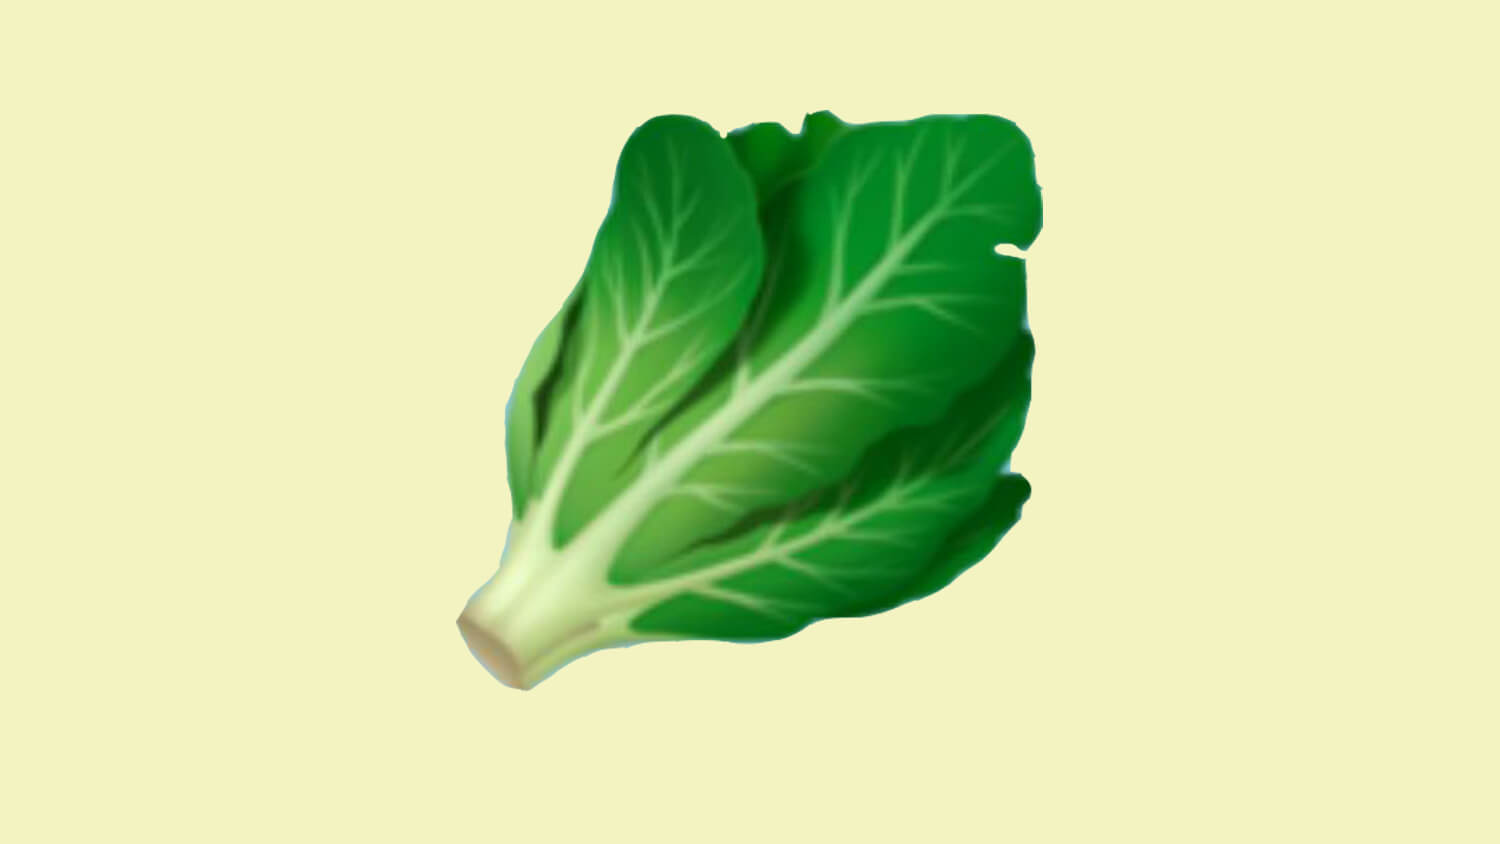 iPhone Users Now Have a Romaine Lettuce Emoji That's Free From E. Coli